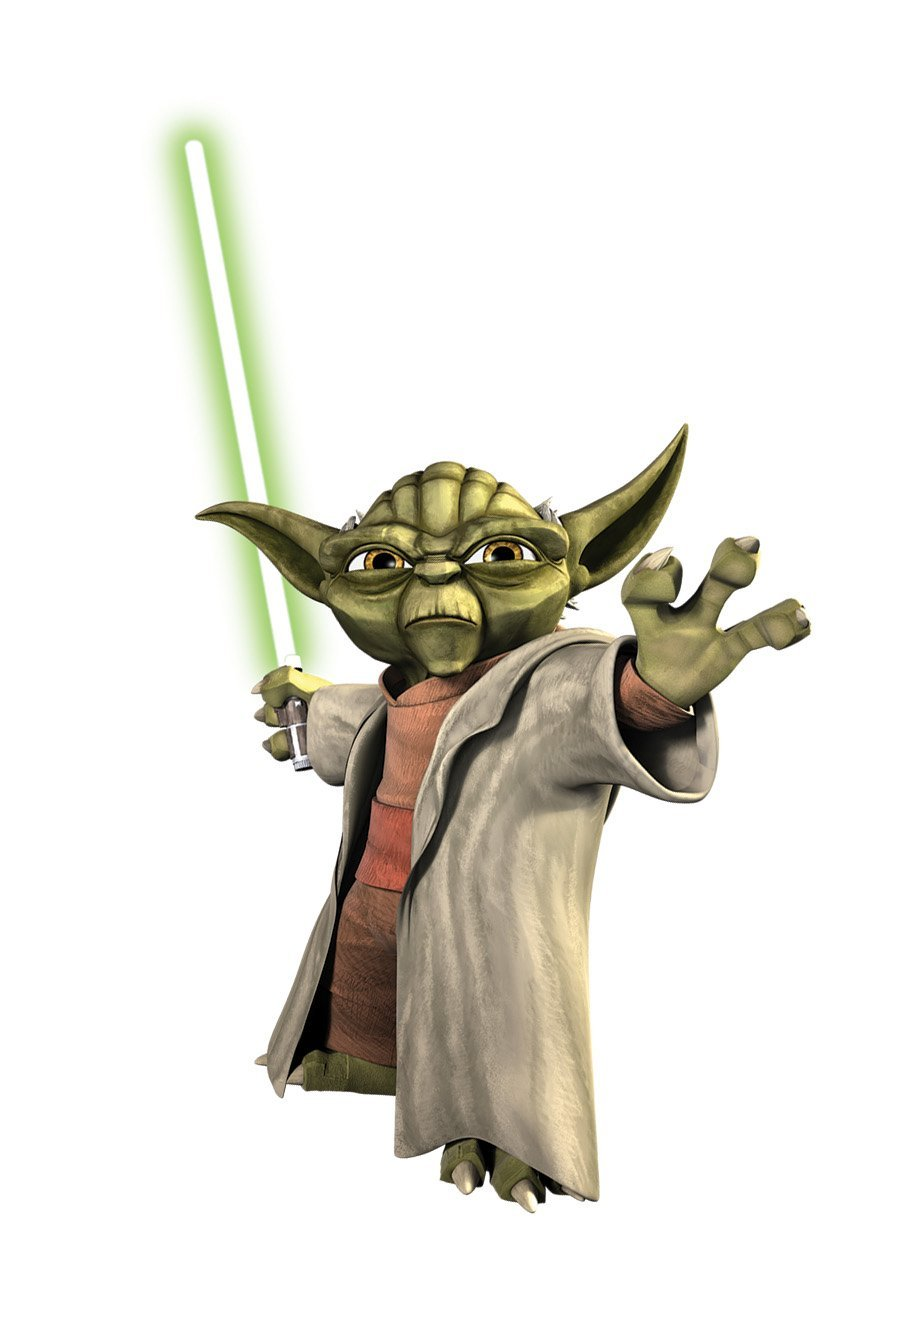 Yoda (as of The Clone Wars)